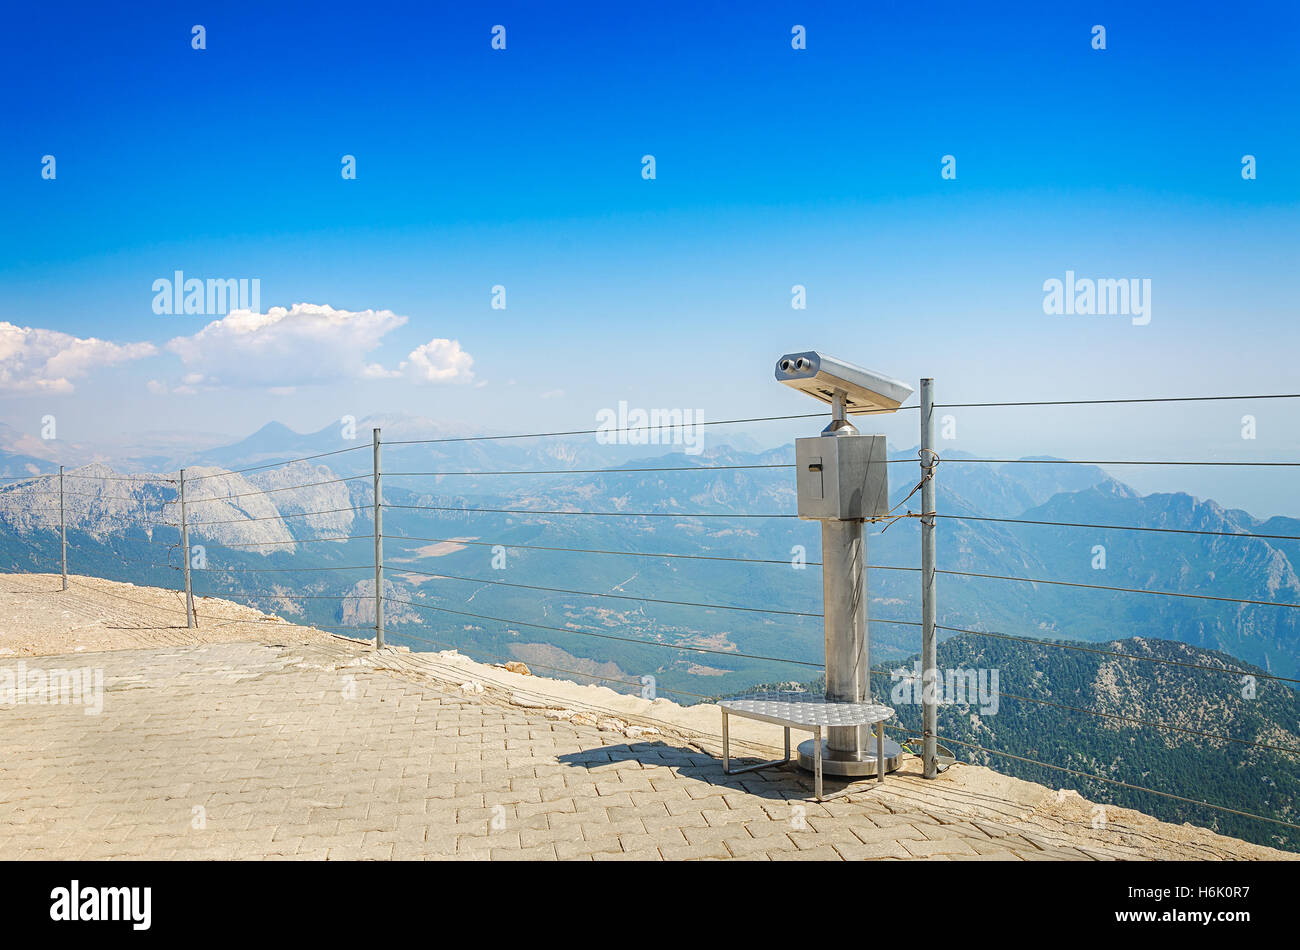 Observation deck with coin-operated telescope or binocular on top of mount Tahtali, Kemer, Antalya province Turkey. Stock Photo